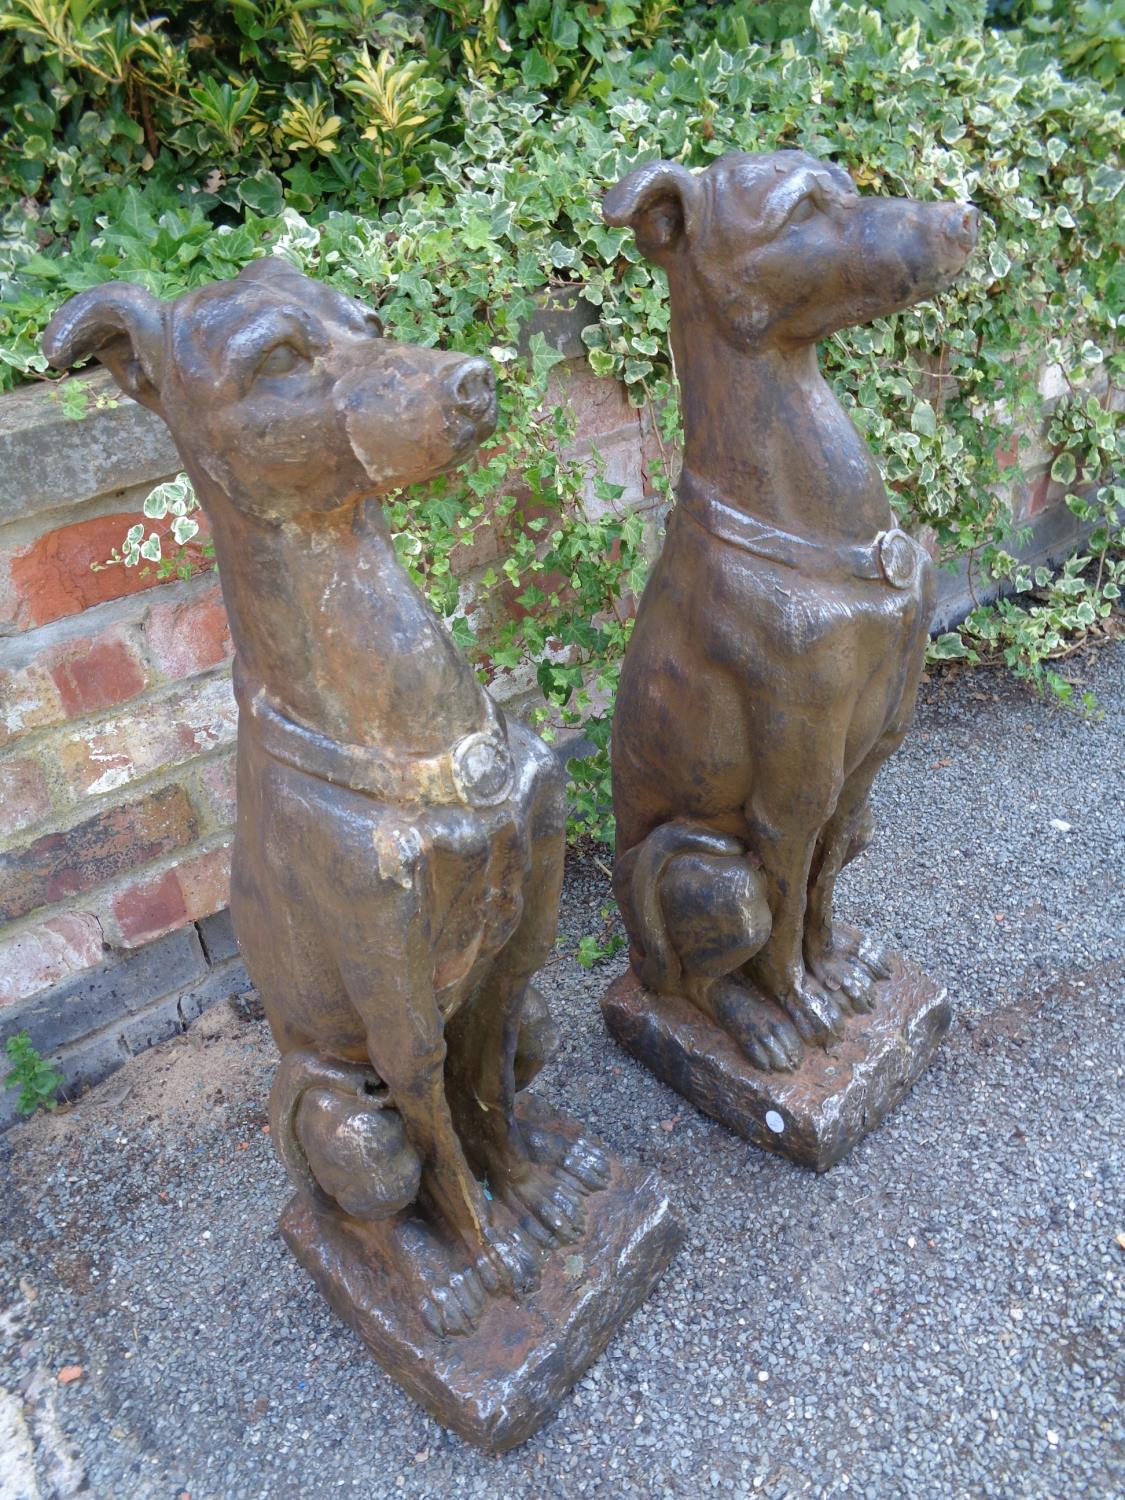 TWO LARGE RESIN TYPE DOG STATUES - Image 3 of 3